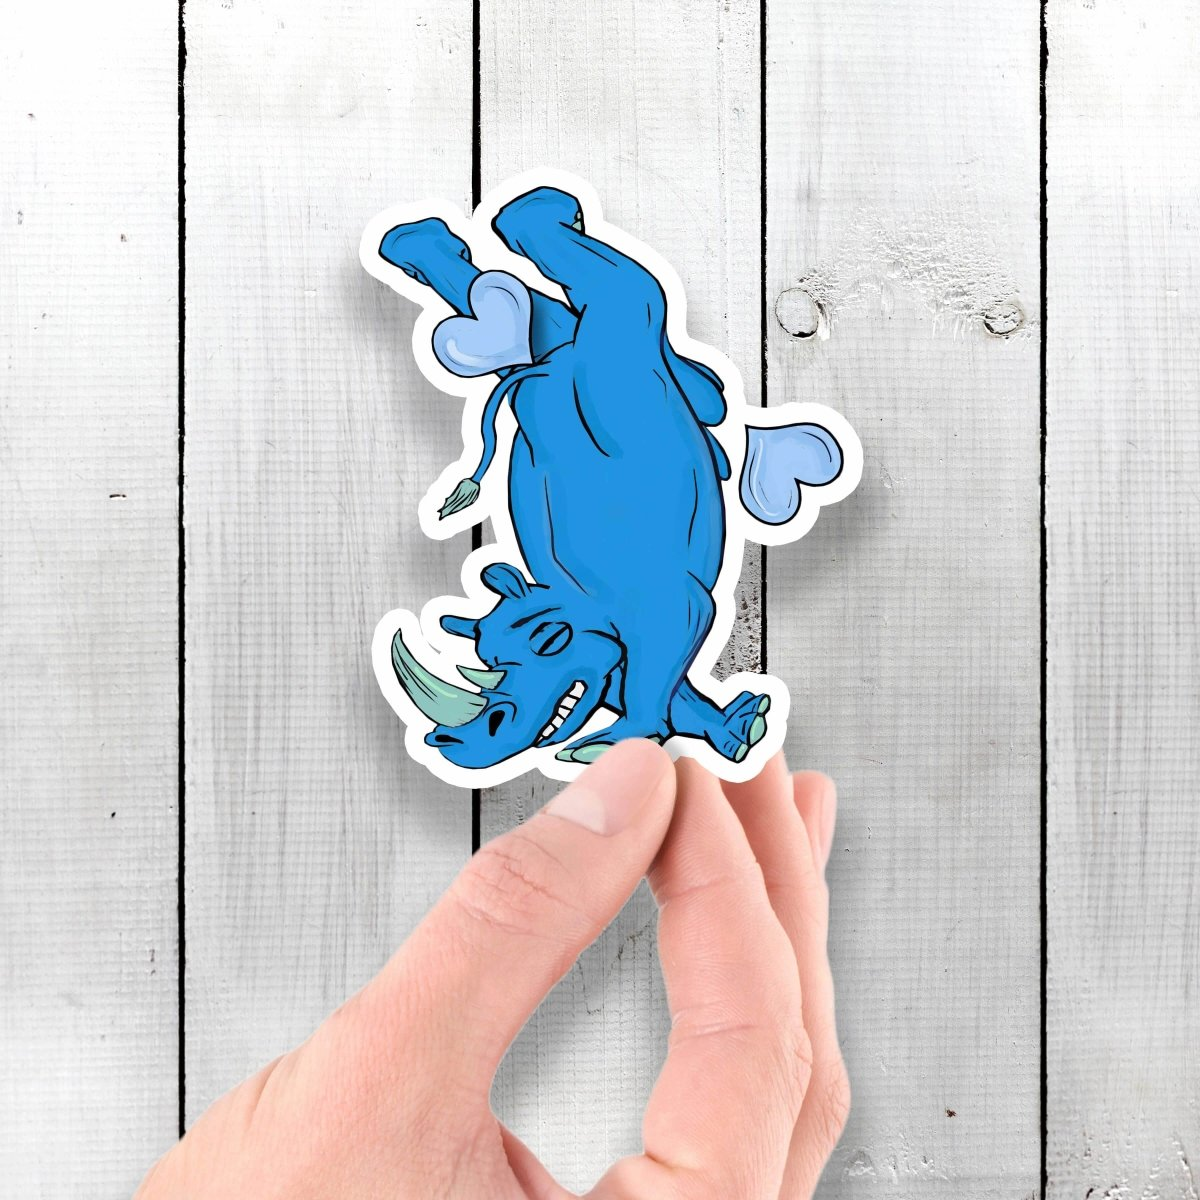 Breakdancing/Tripping Rhino - Vinyl Sticker - Dan Pearce Sticker Shop